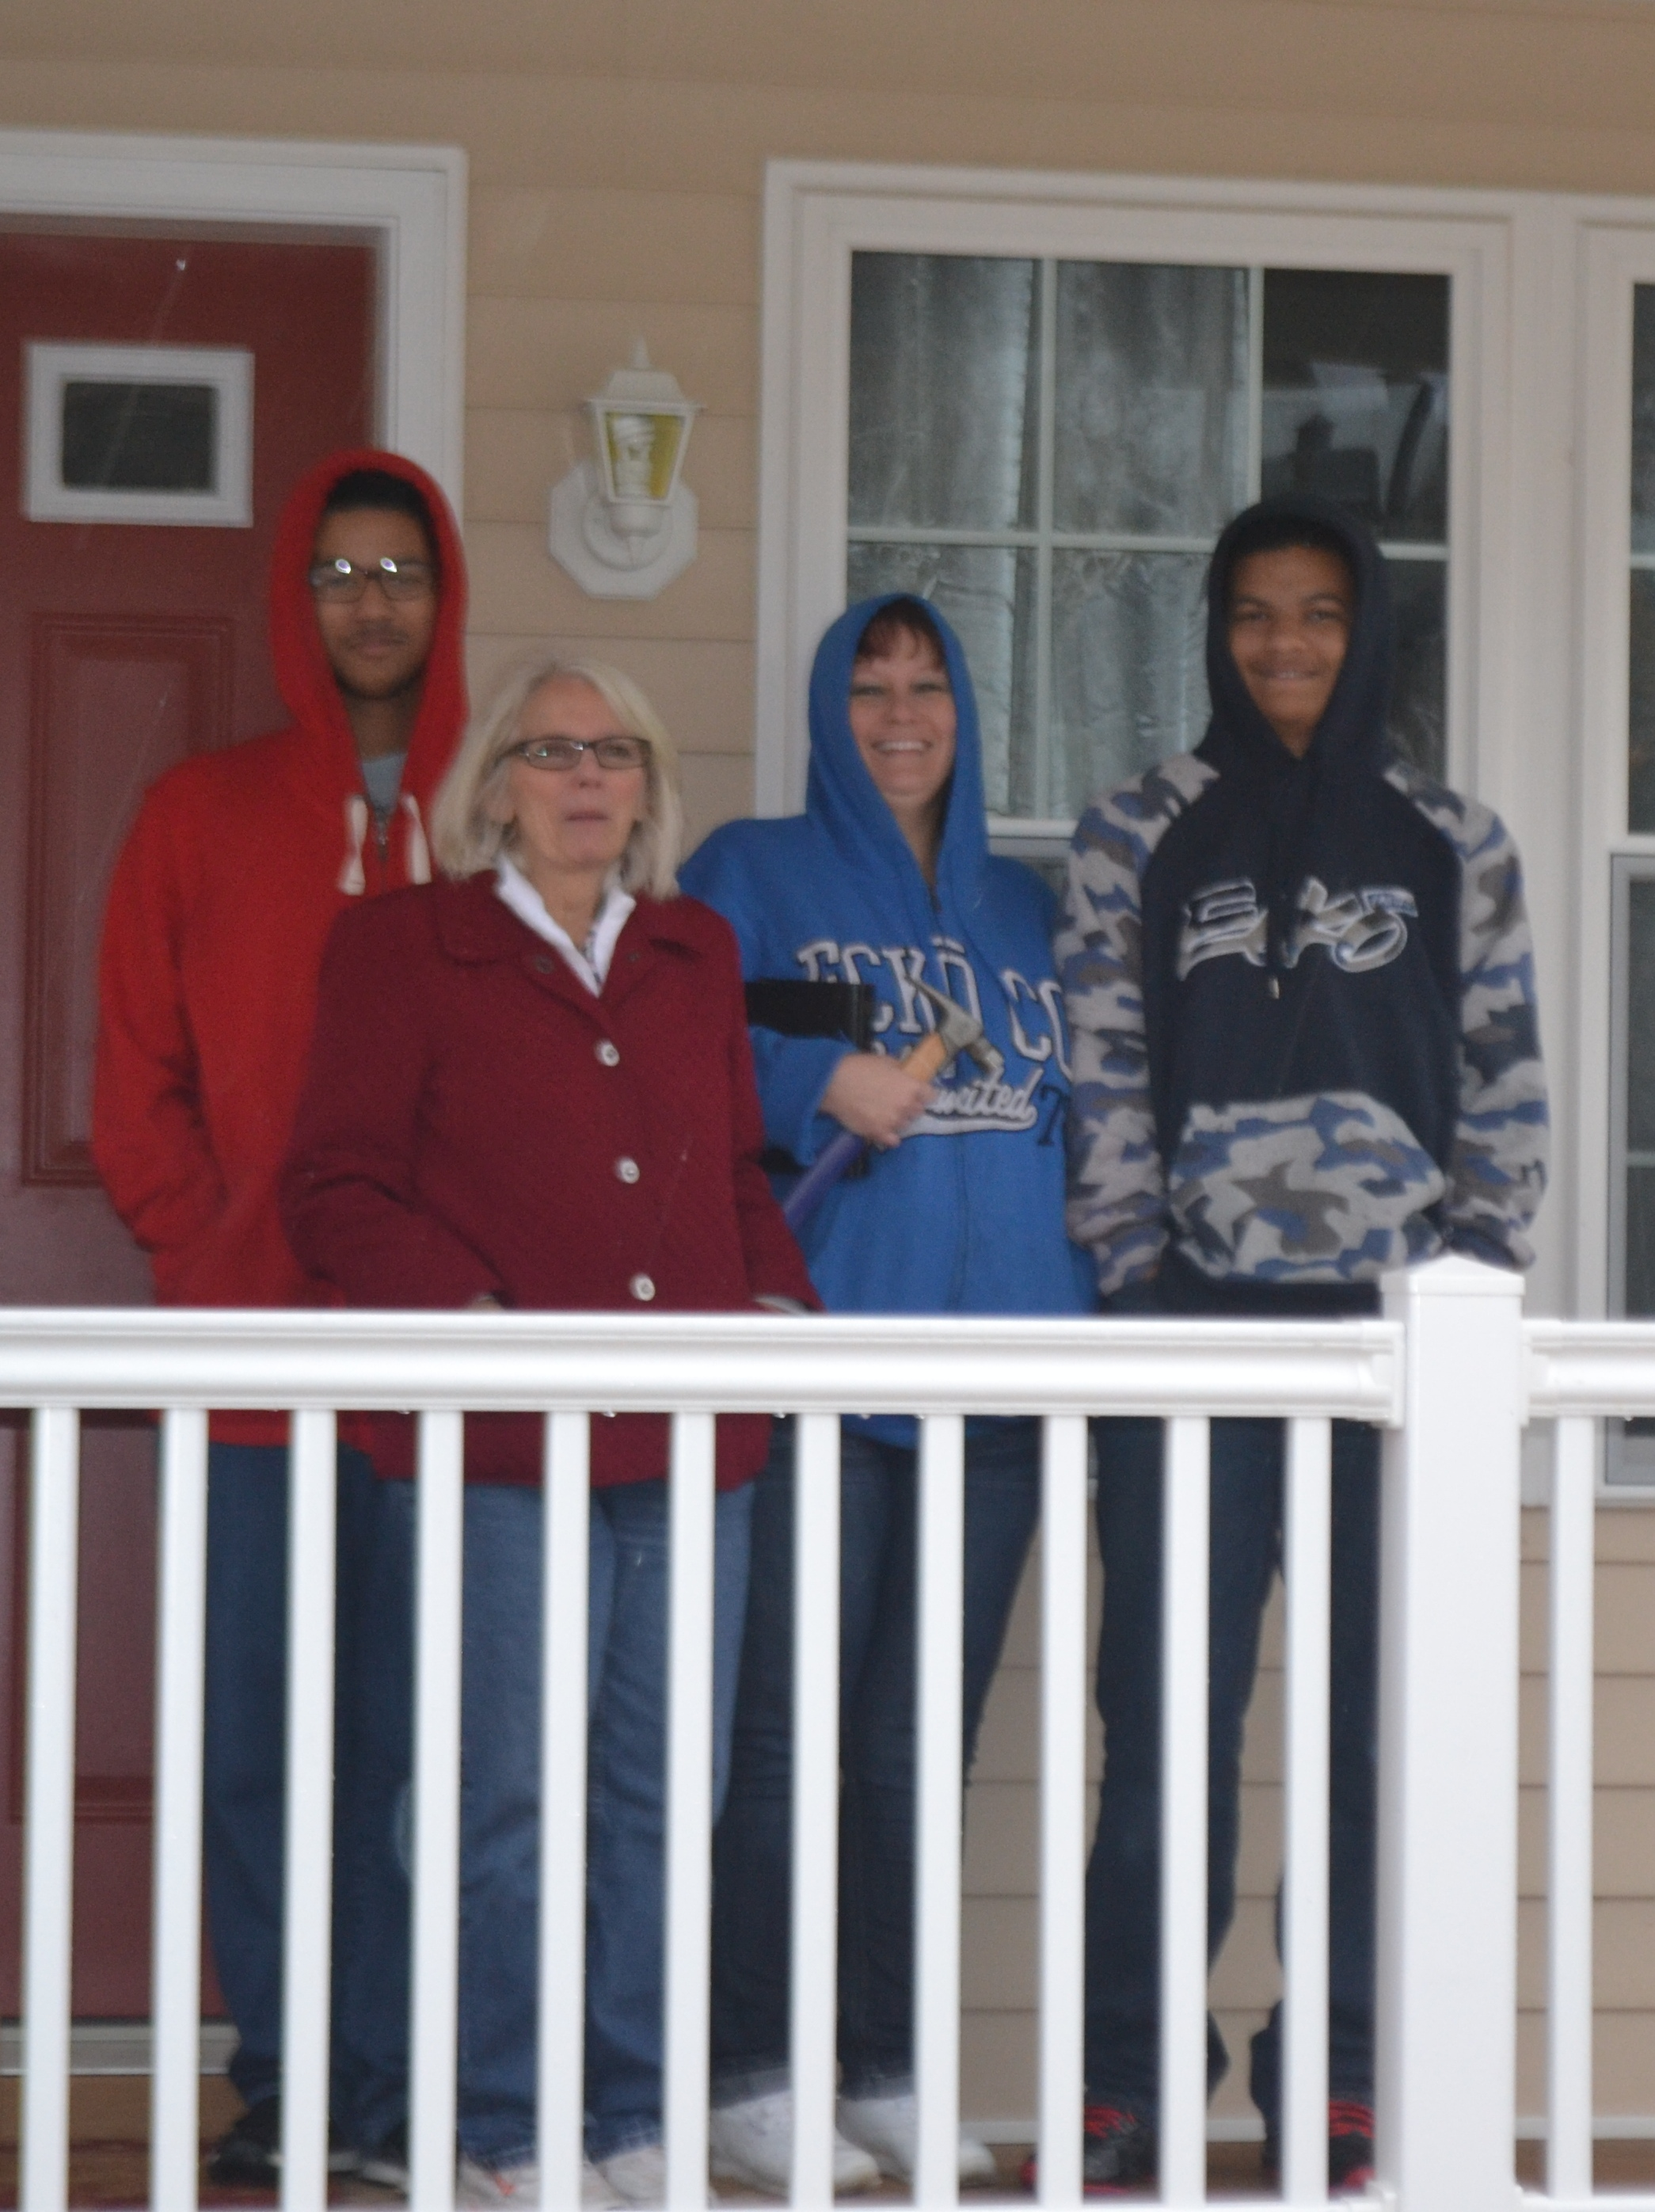 Habitat for Humanity of Chester County has many stories to tell. Read about one of our newest families...